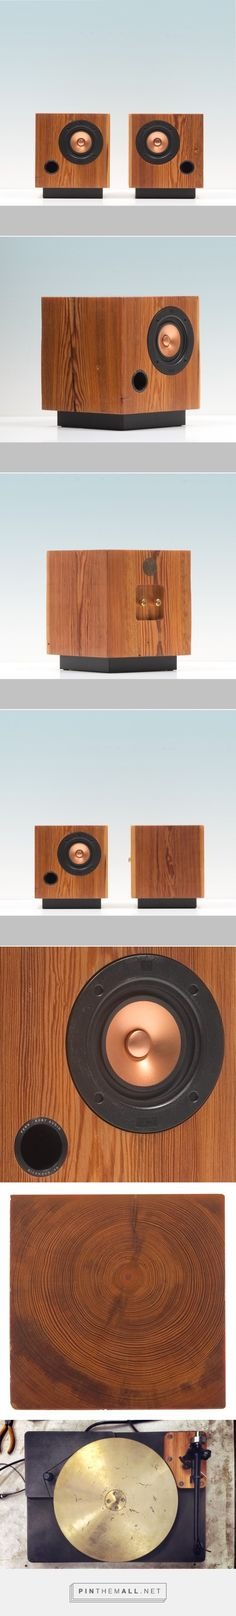 Fern & Roby Cube Speakers - Design Milk - created on Open Baffle Speakers, Wooden Speakers, Diy Speakers, Built In Speakers, Stereo Speakers, Echo Speaker, Sound Speaker, Audio Design, Speaker Design